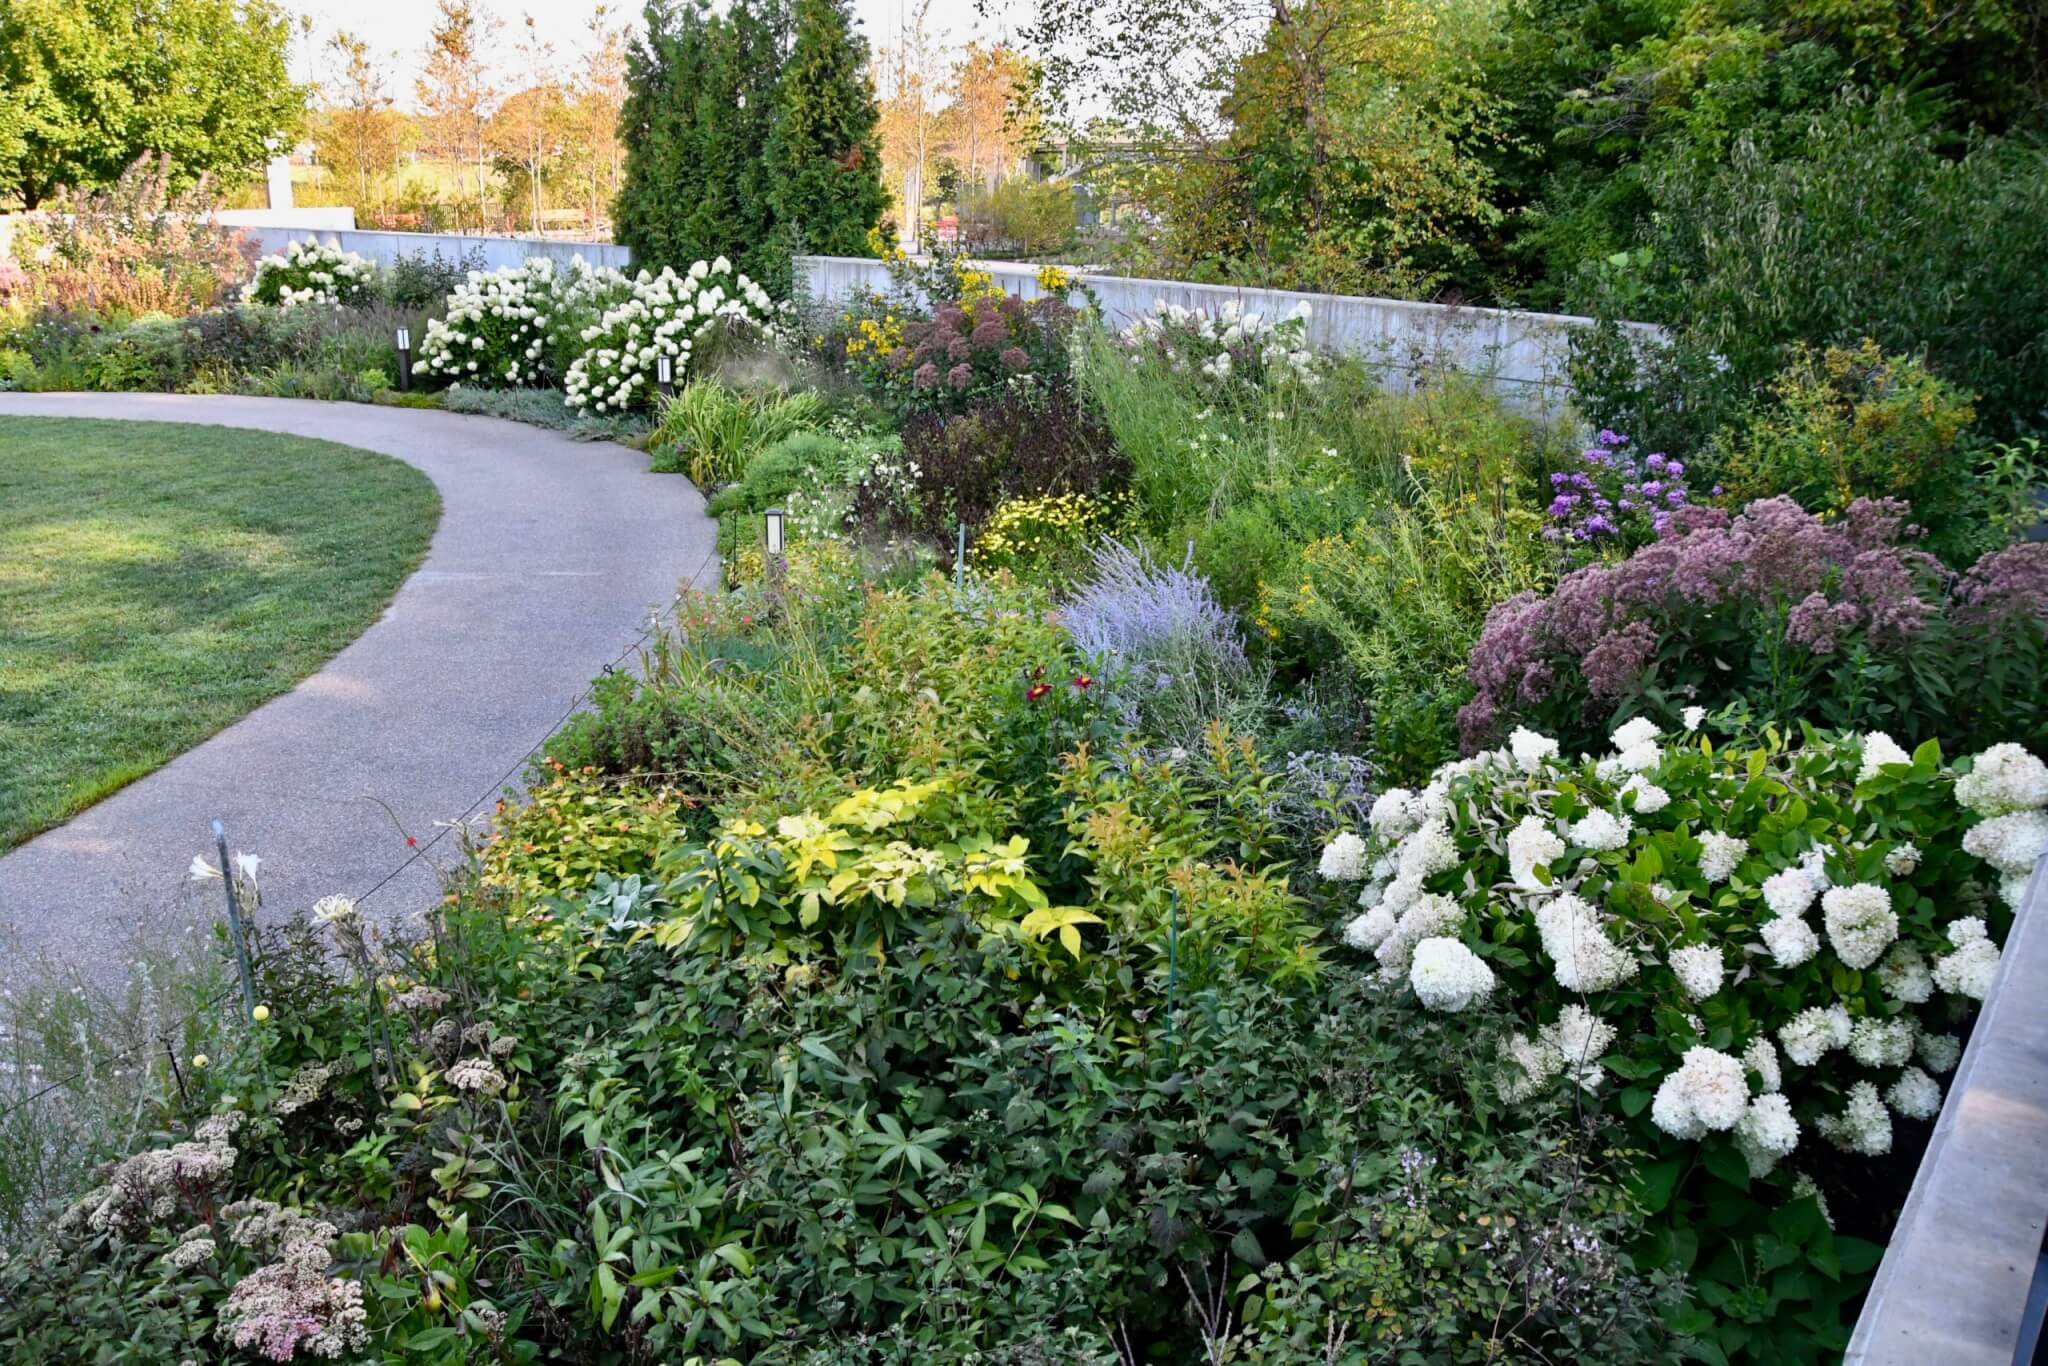 Path surrounded by different colored flowers and plants